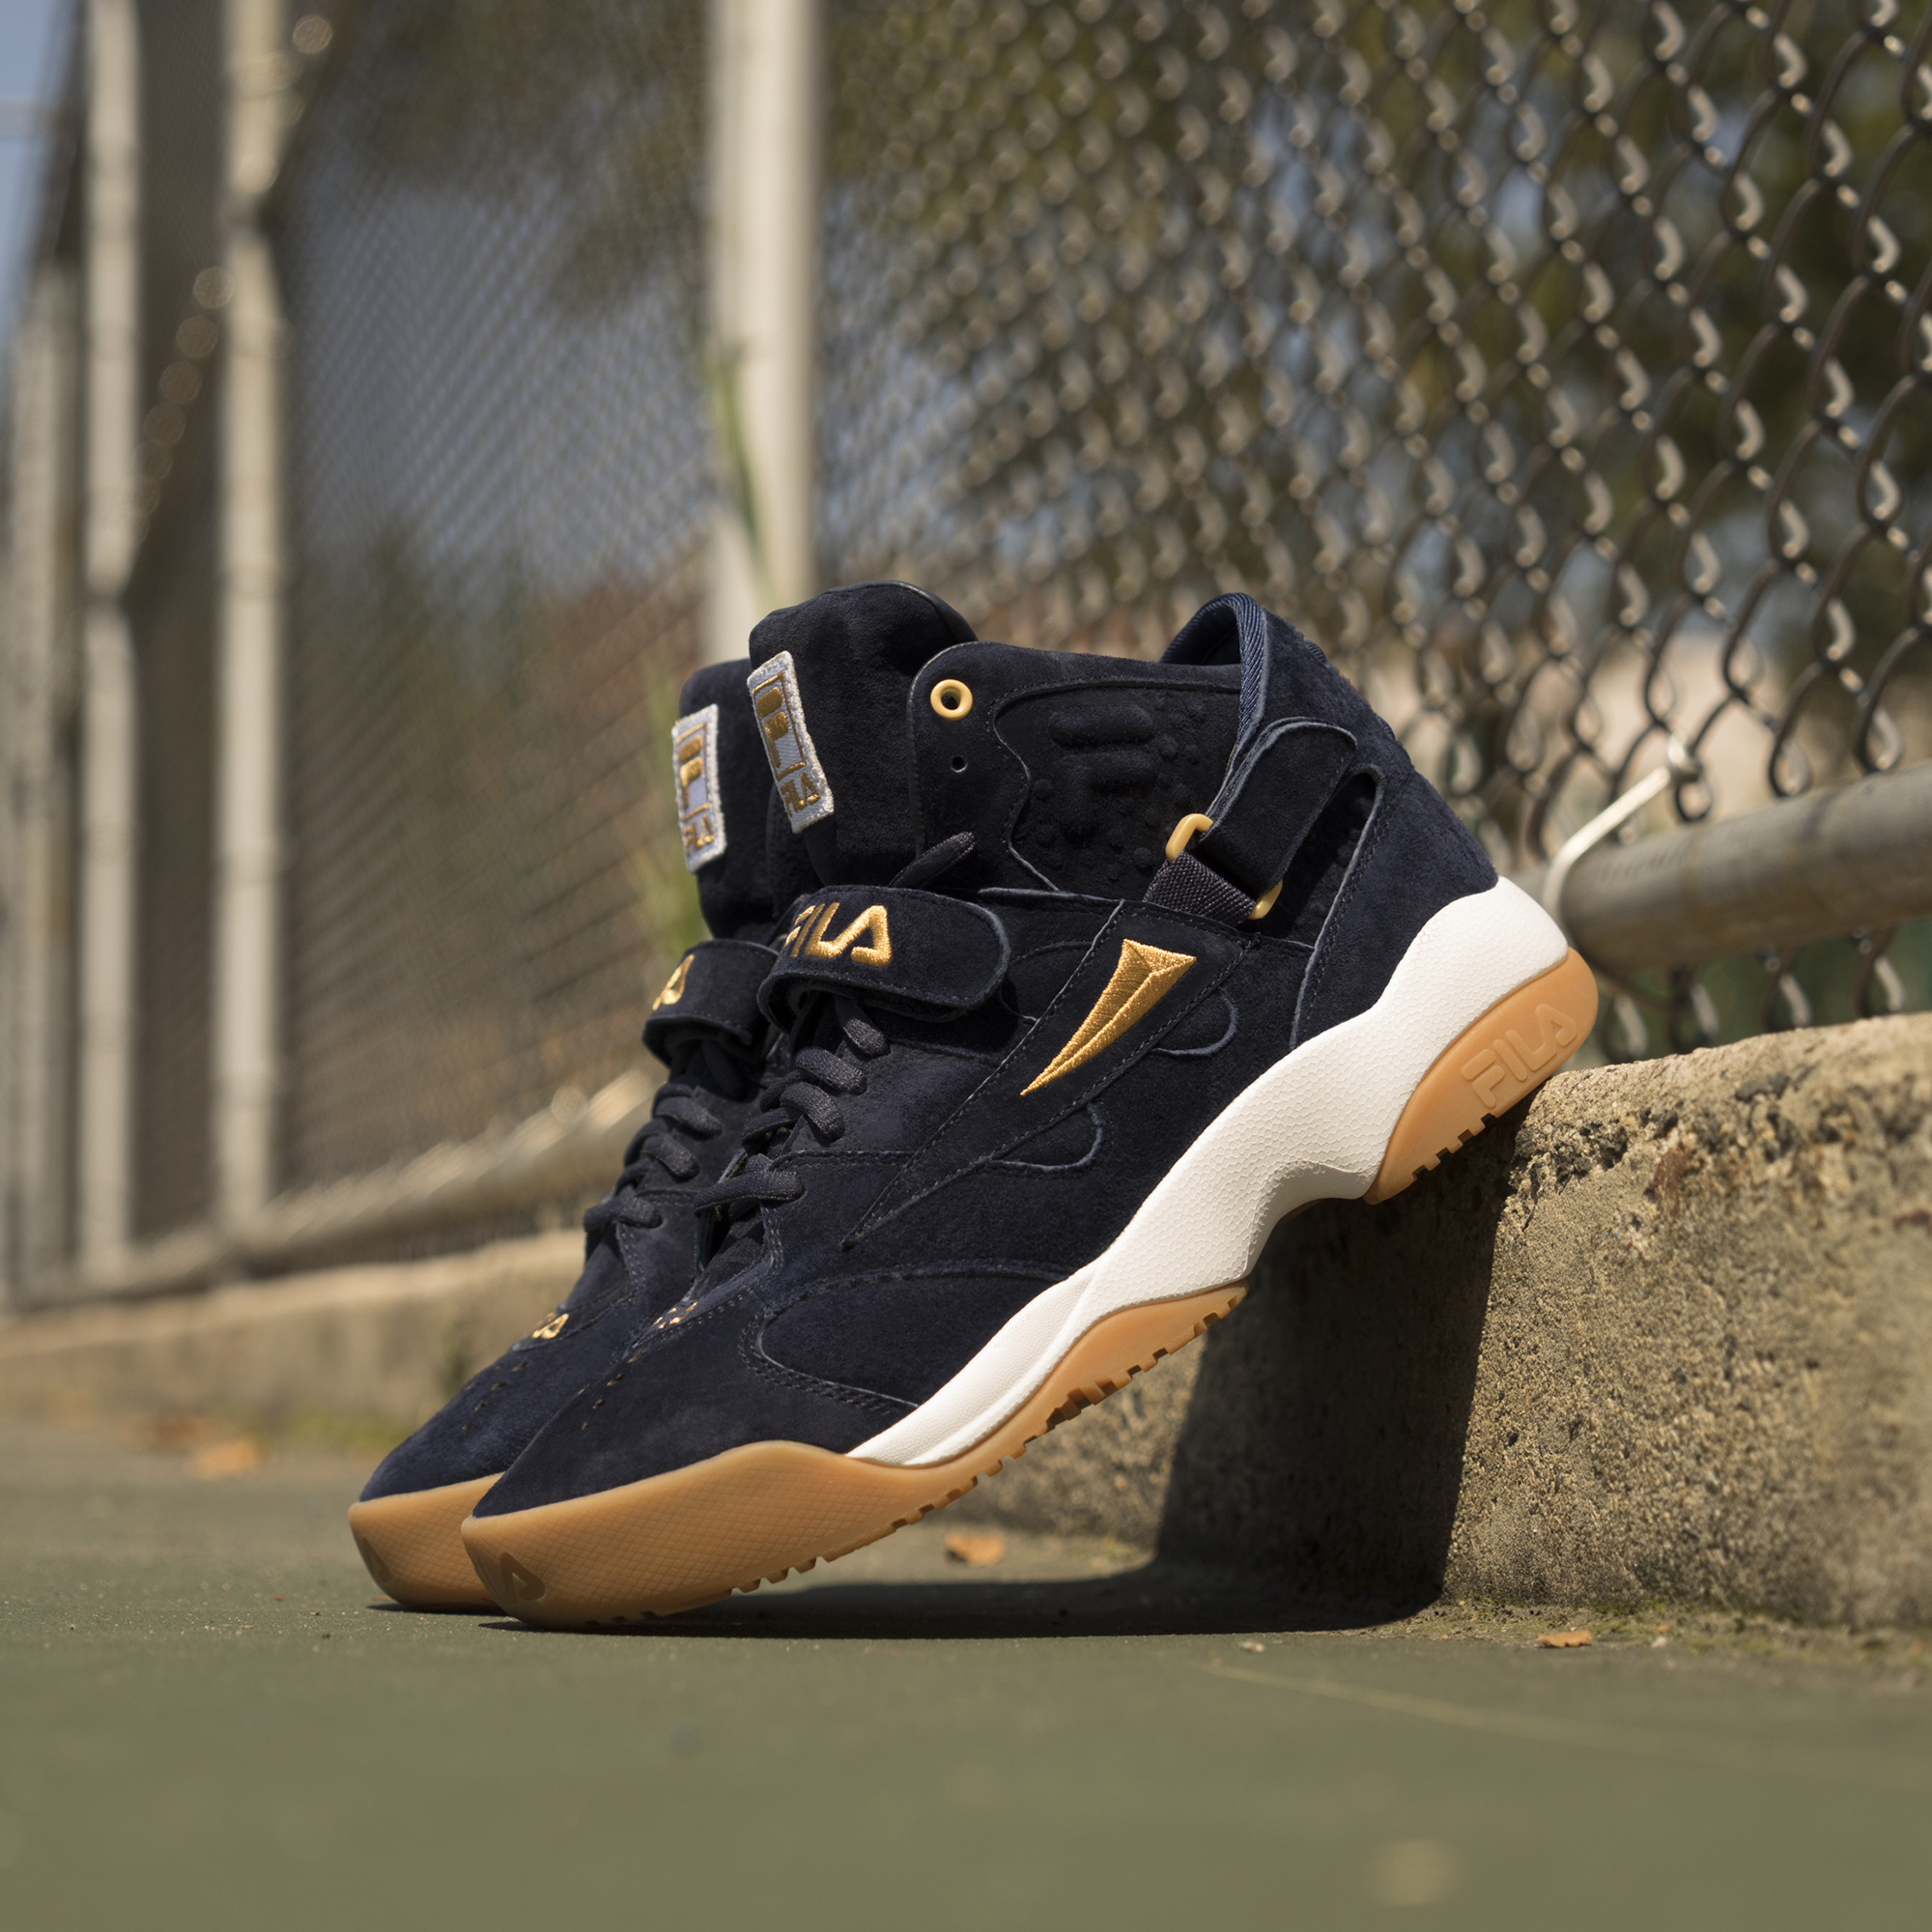 FILA Spoiler royal beginnings 5